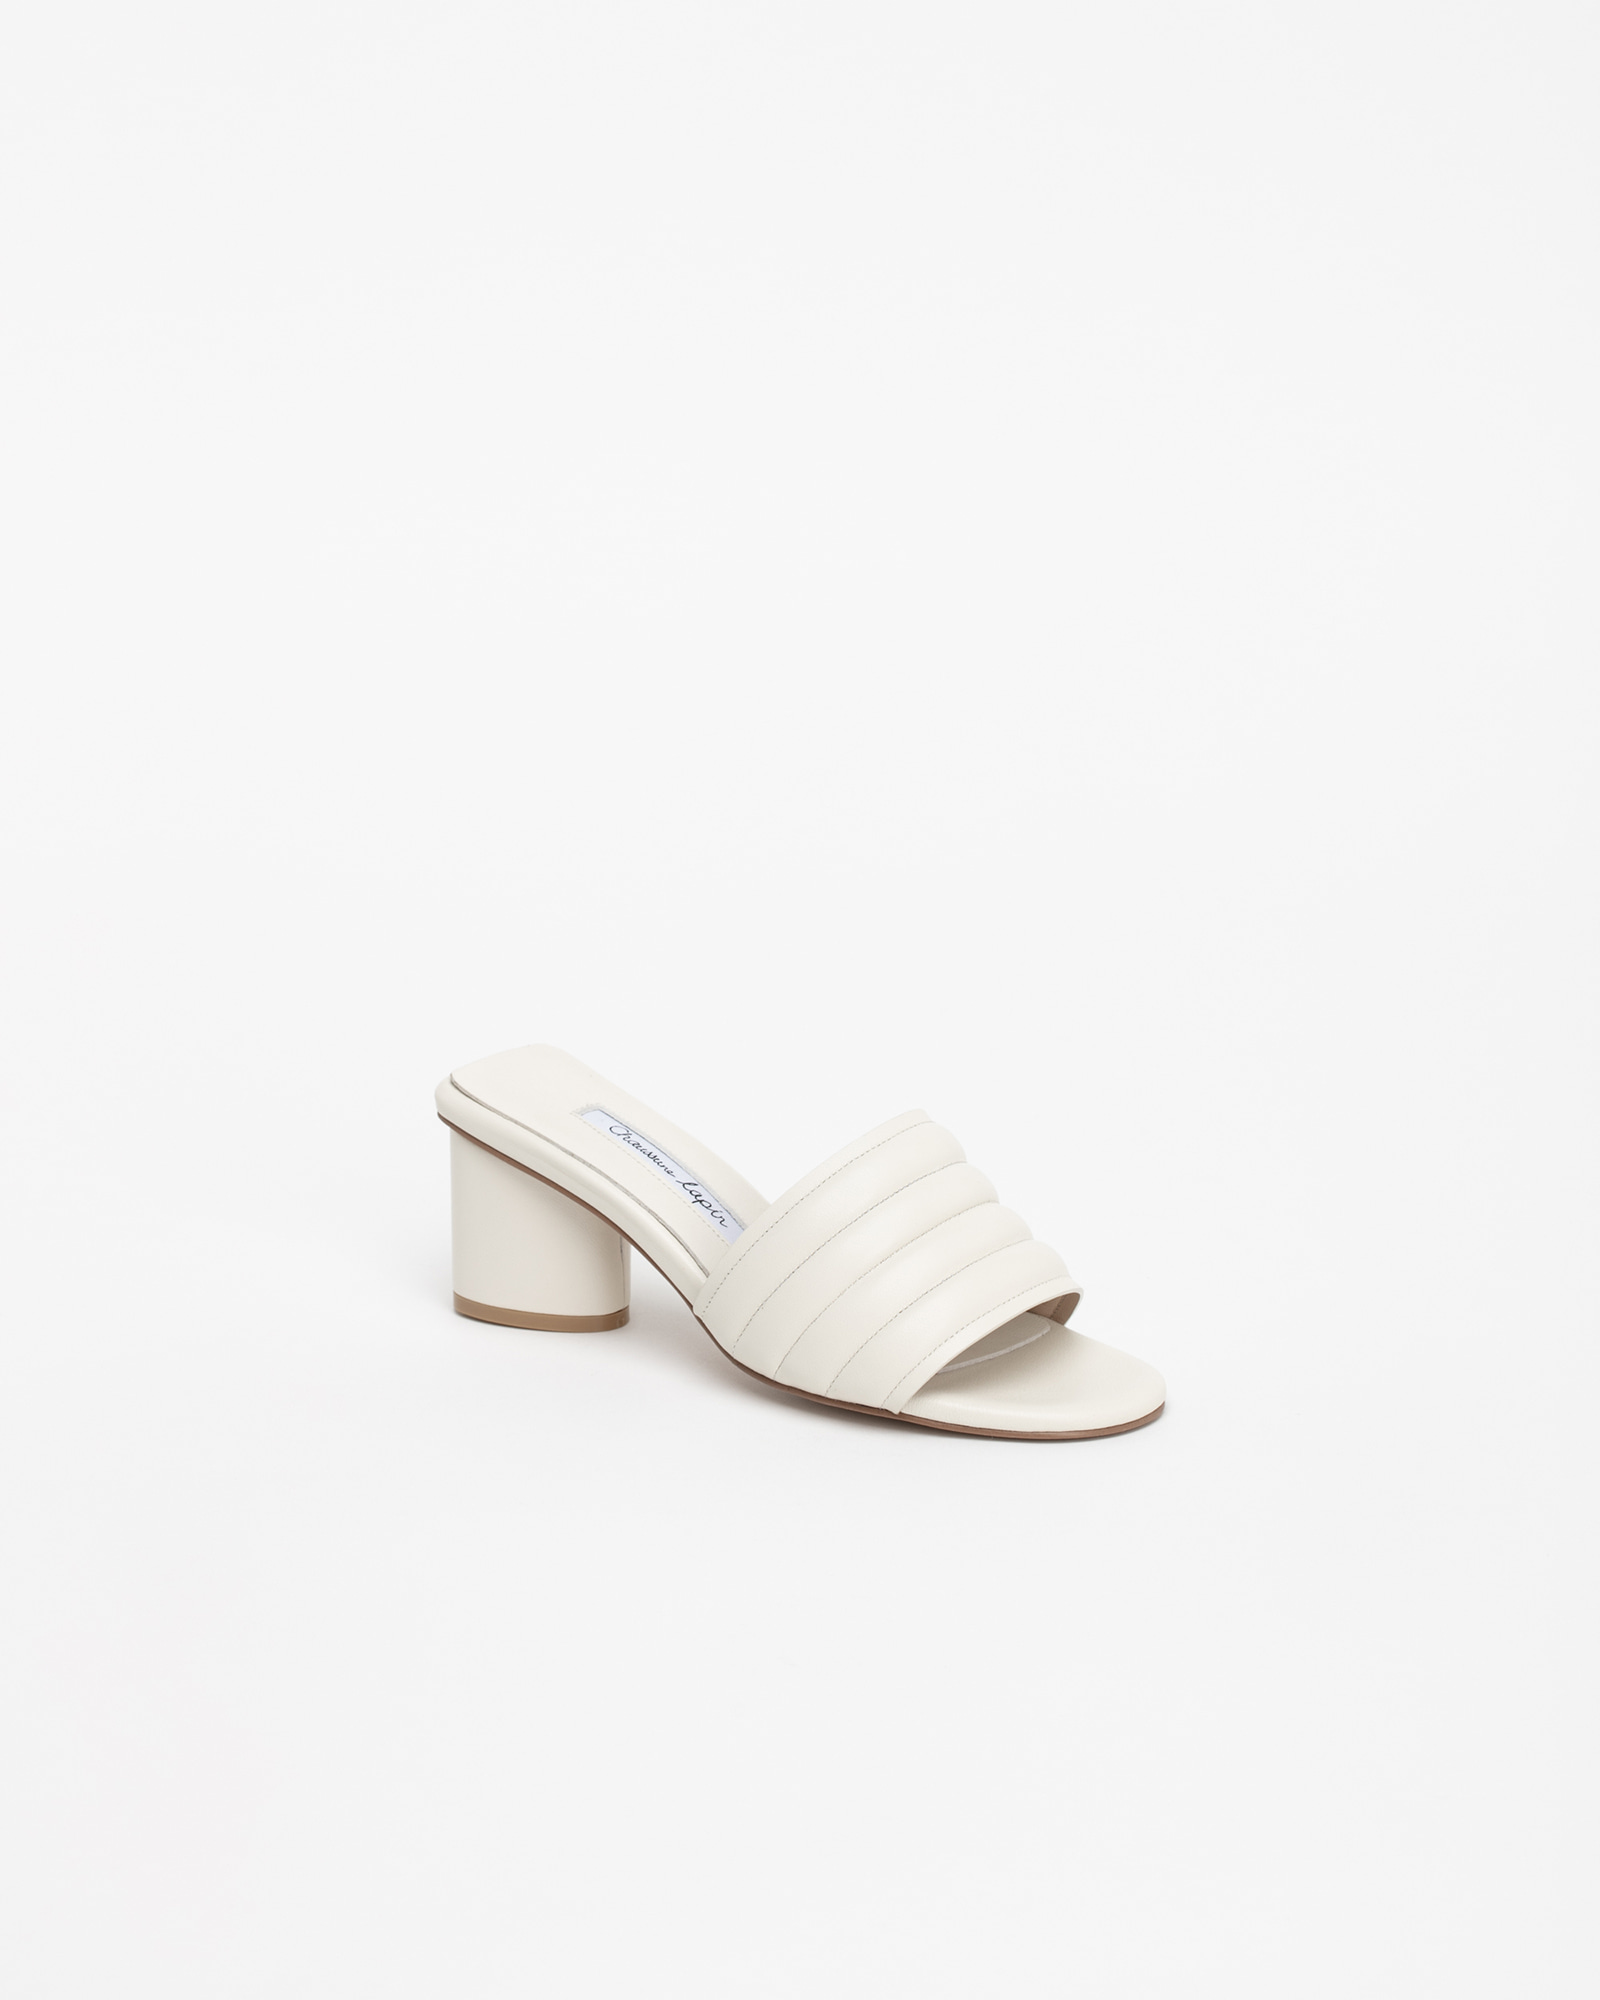 Alia Padded Mules in Ivory